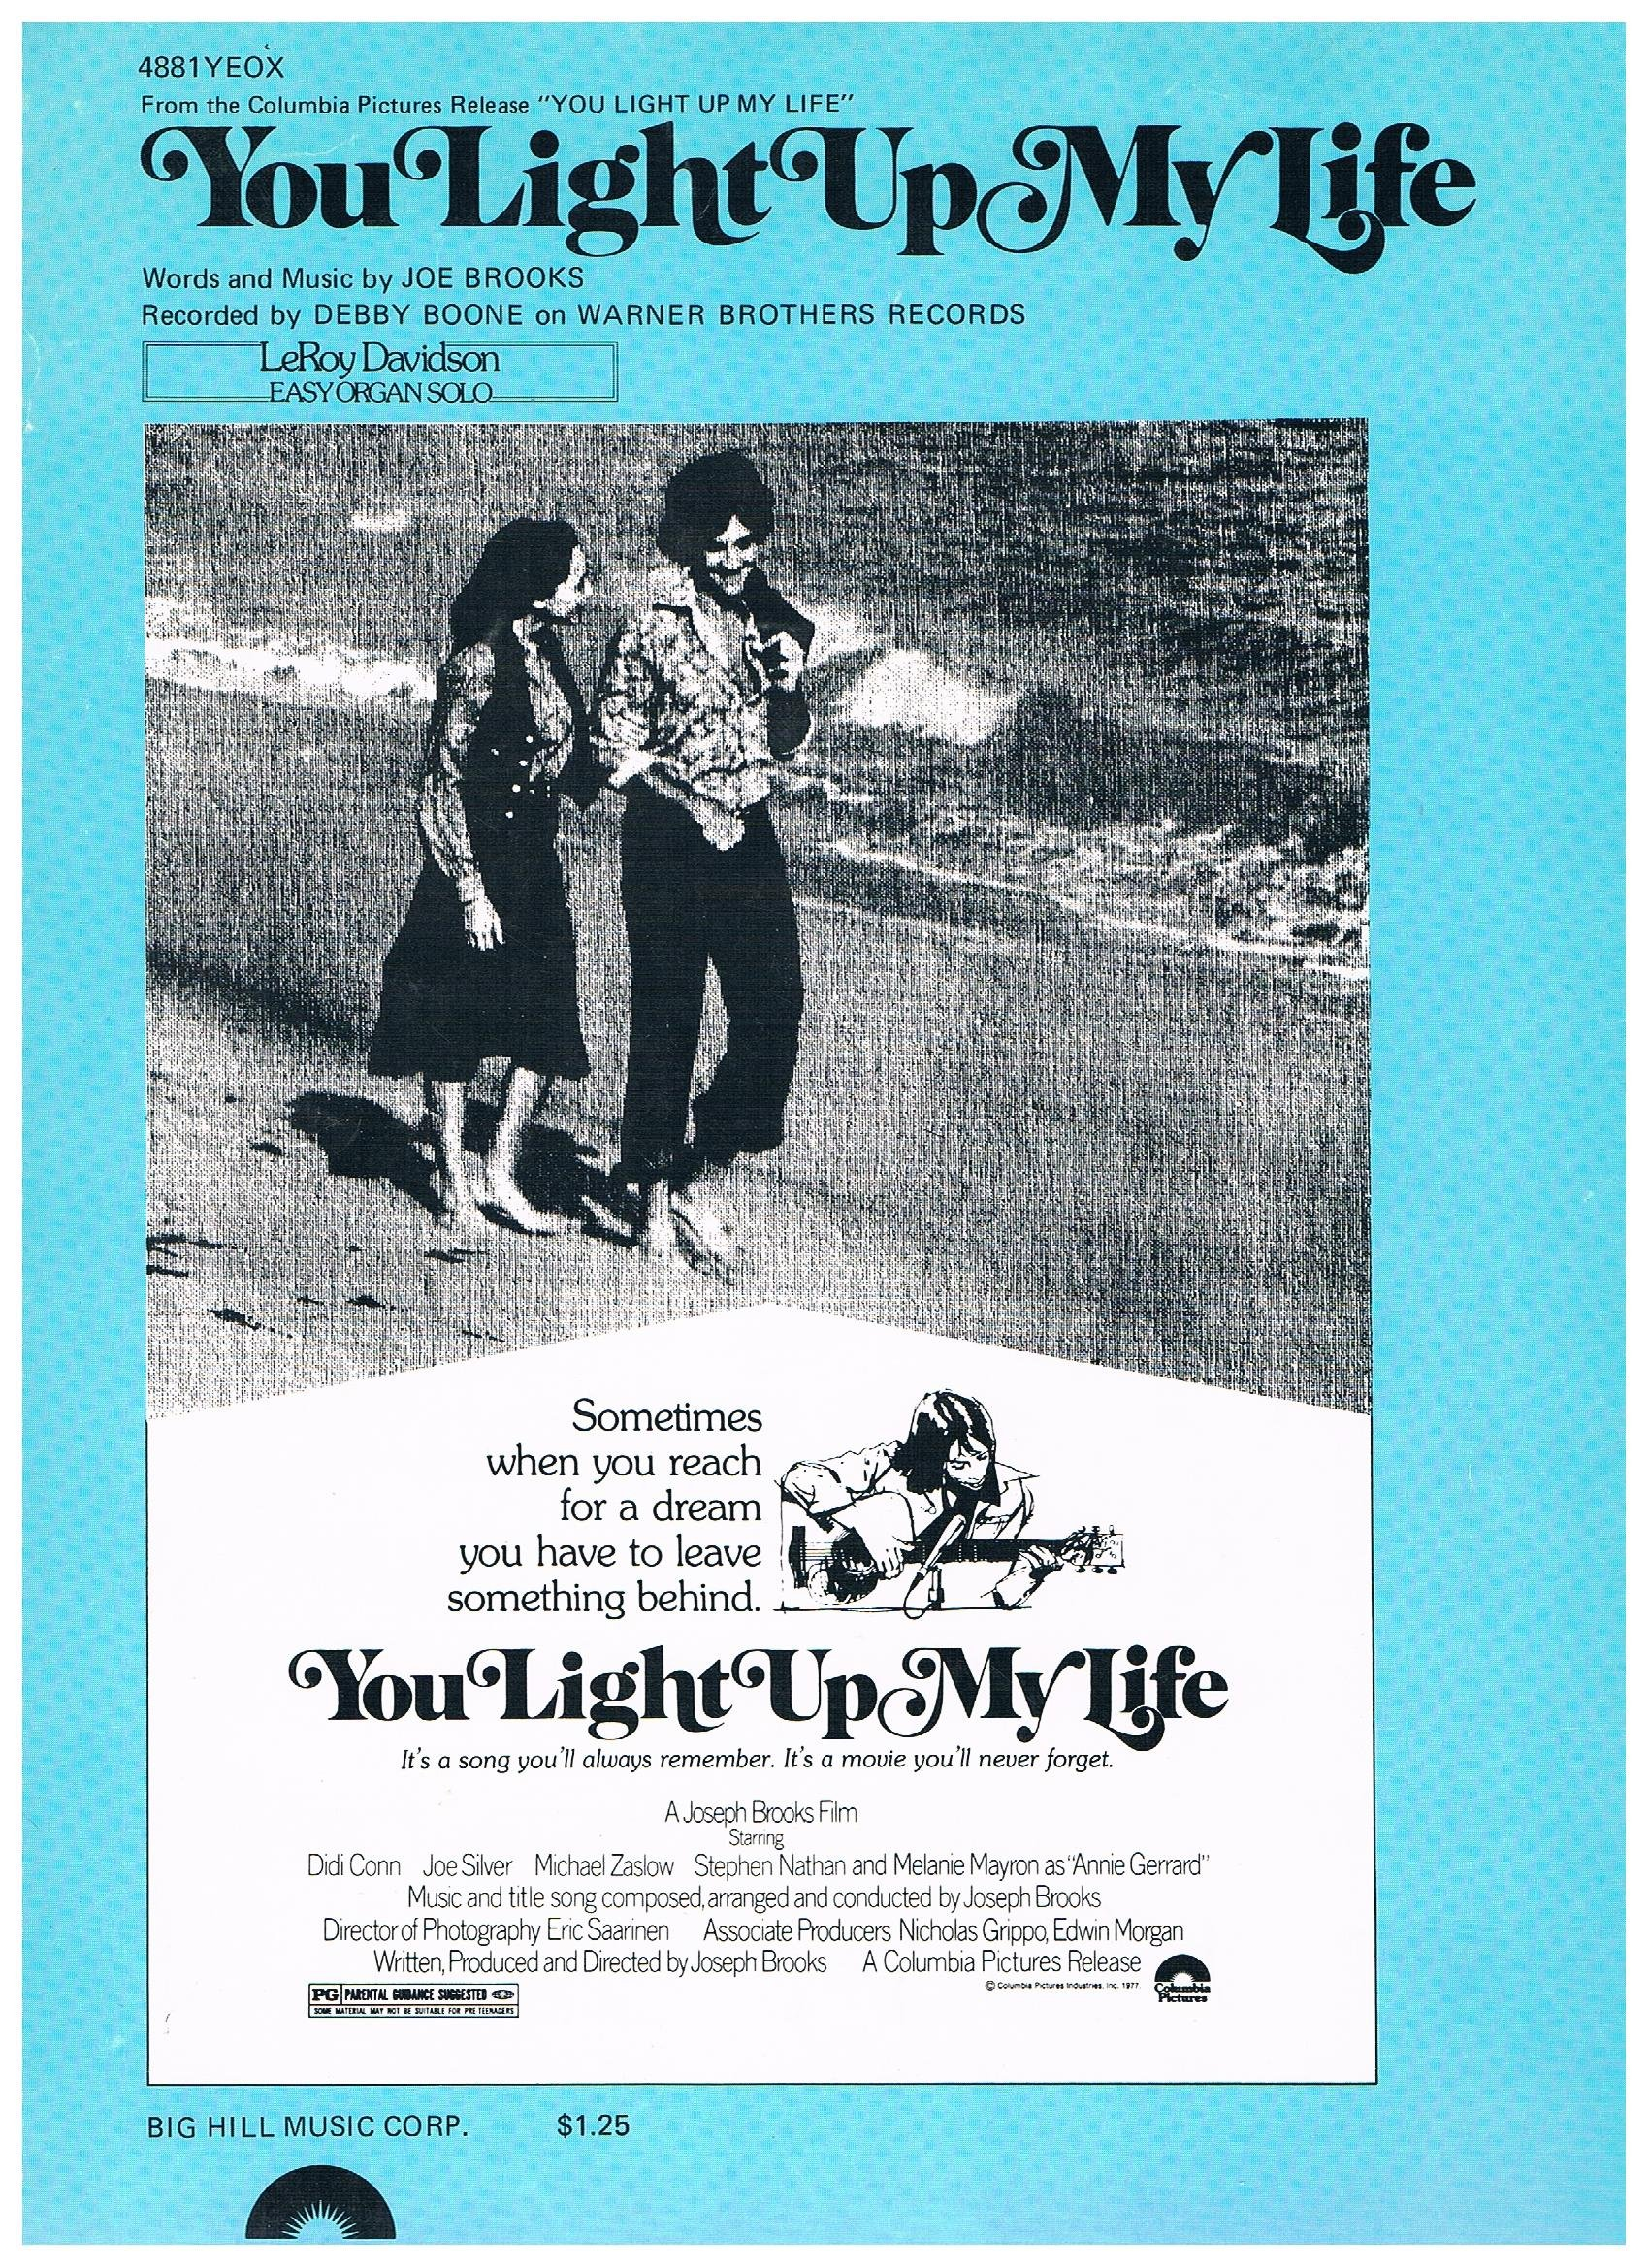 You Light Up My Life (Movie) Easy Organ Solo Debby Boone Arr. LeRoy  Davidson: Words And Music By Joe Brooks: Amazon.com: Books Design Inspirations